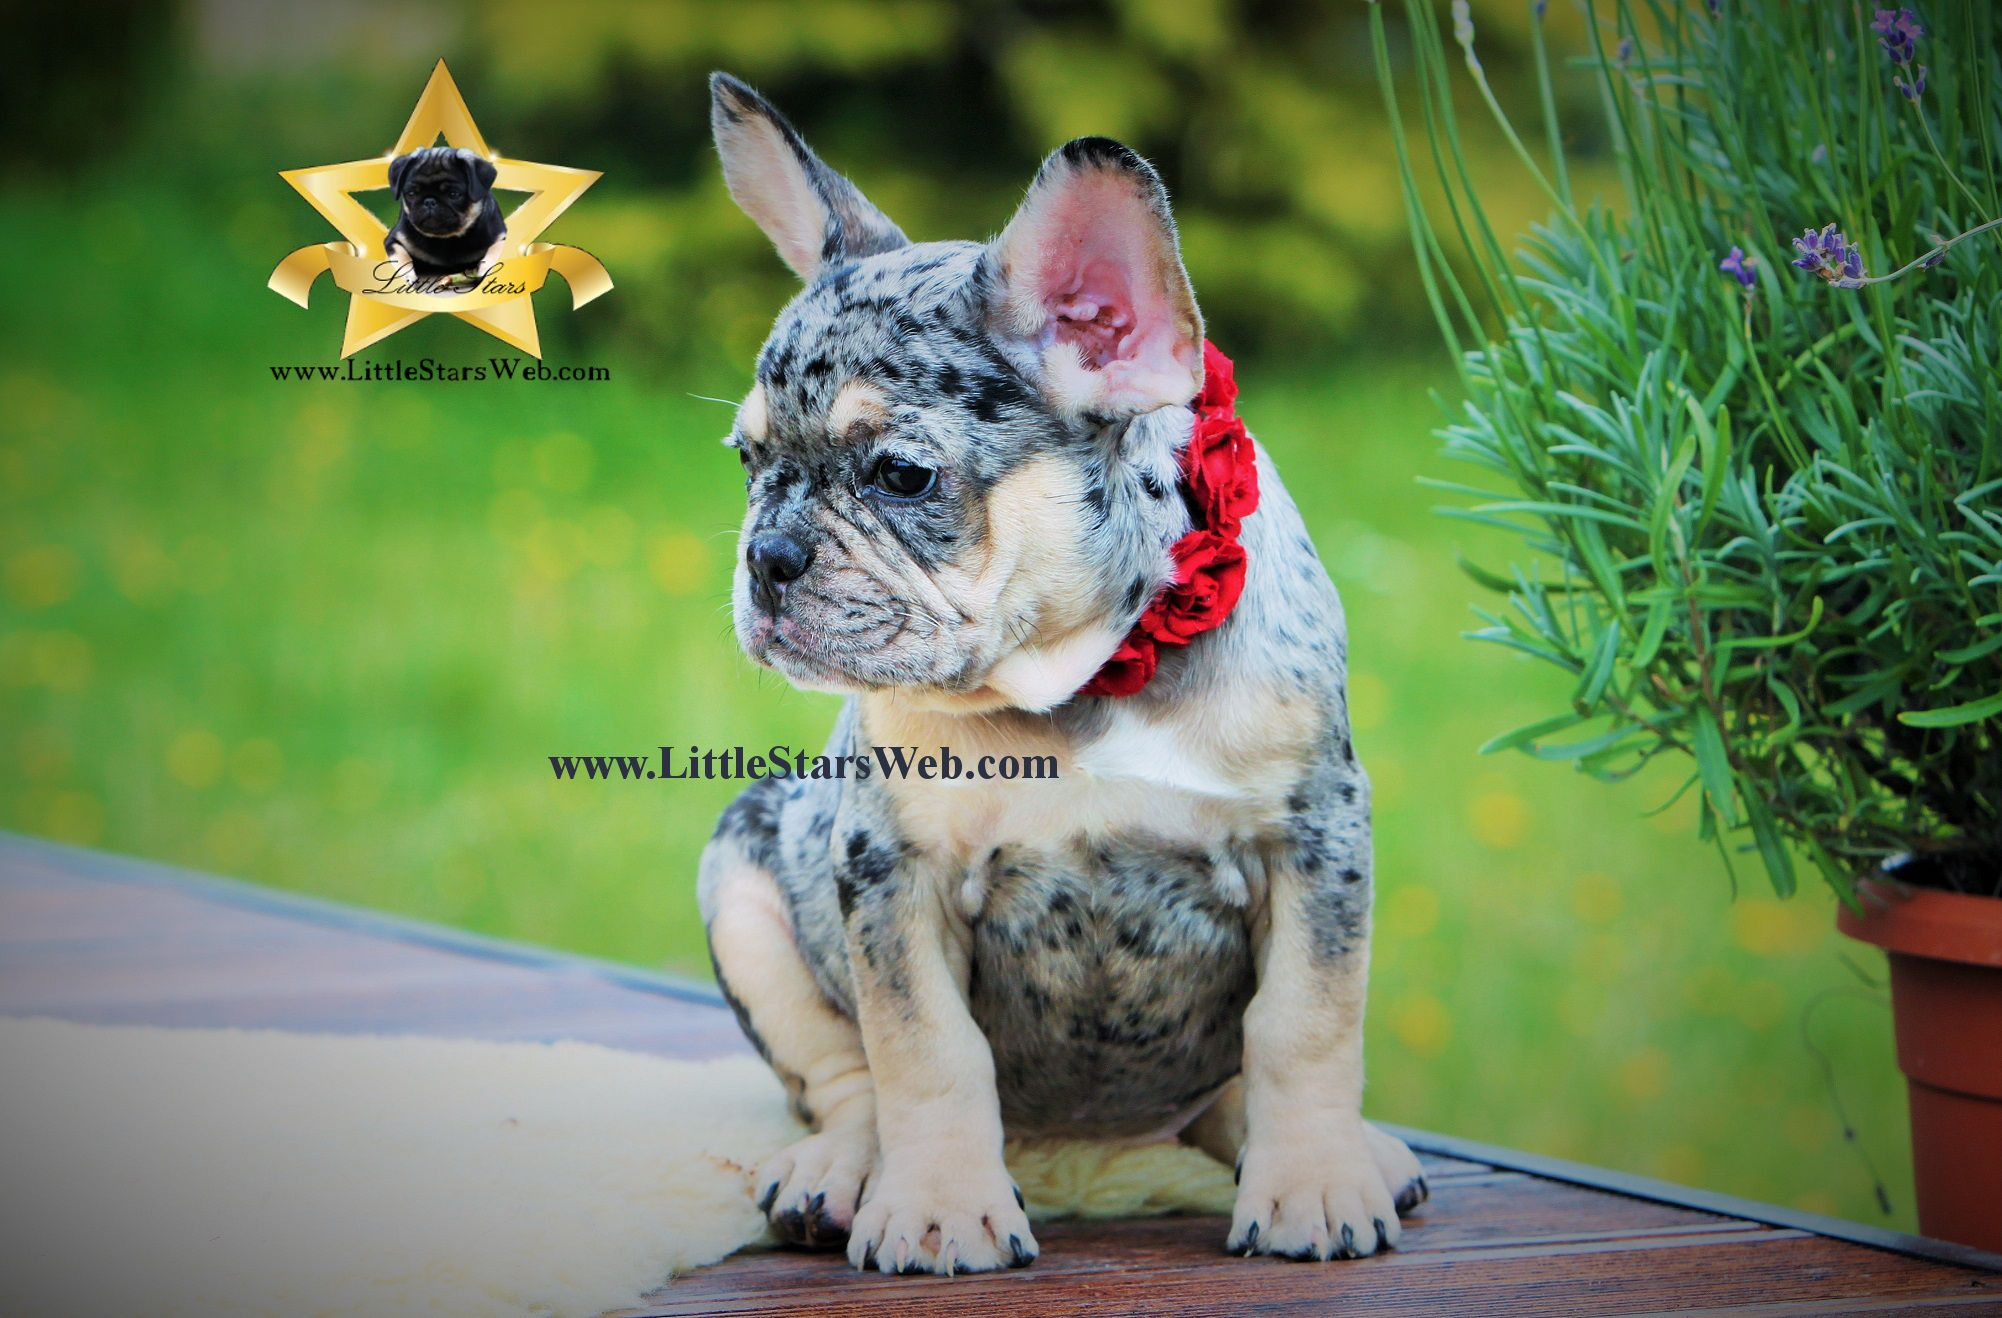 Little Stars Blue Tan French Bulldog Little Stars Breed Of Pugs And French Bulldogs In Rare Colo Cute French Bulldog French Bulldog French Bulldog Puppies